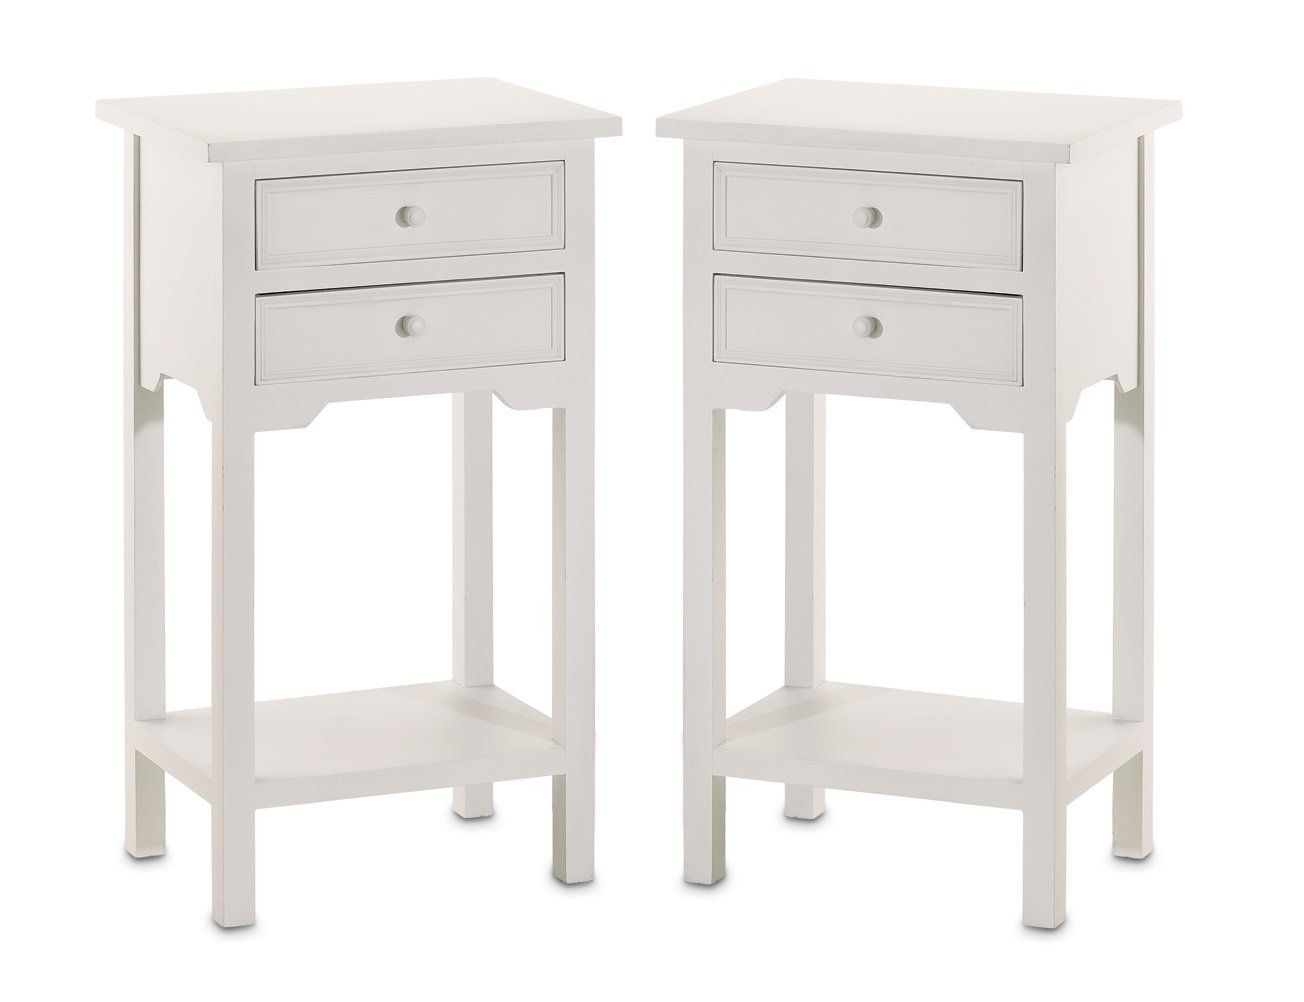 Amazon Com Set Of 2 Wood White End Tables Nightstands With Two